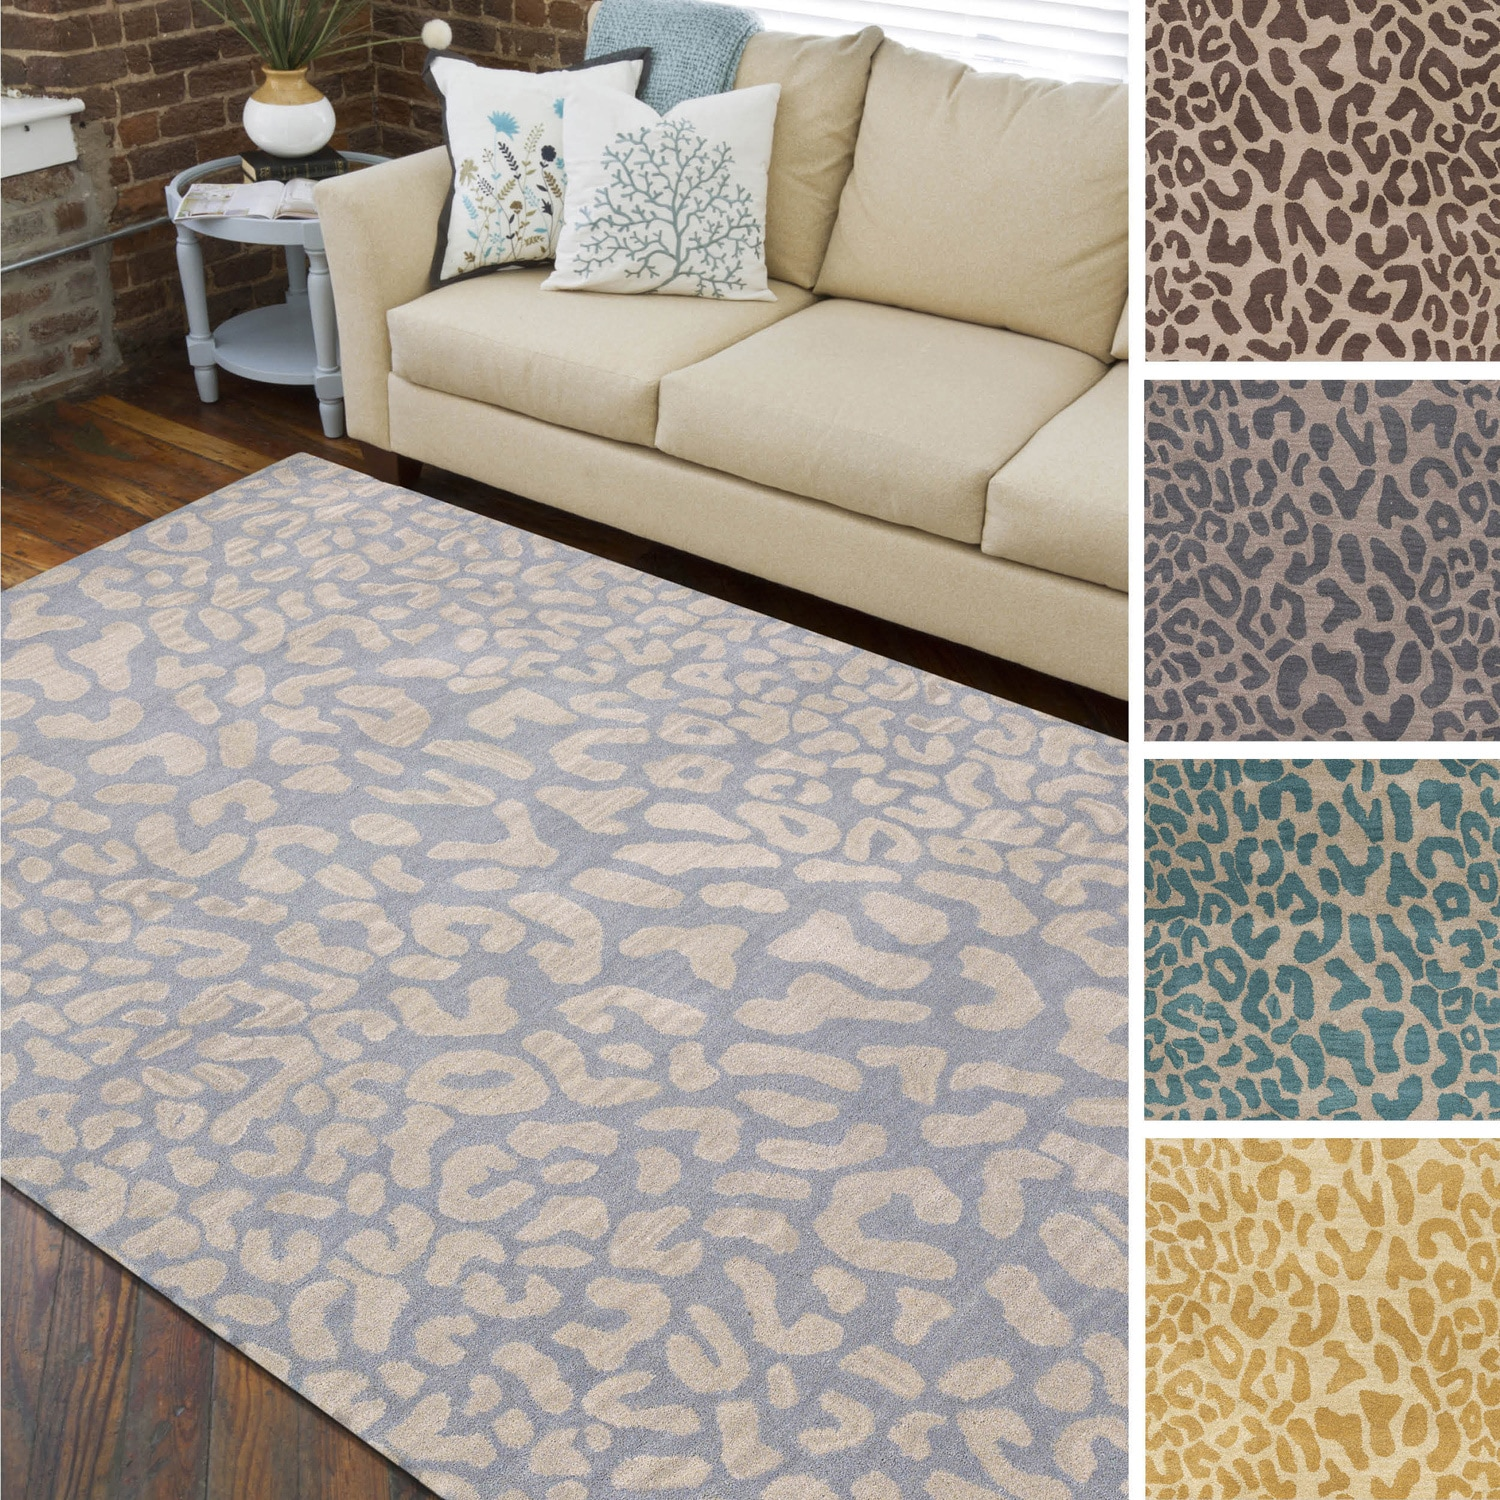 Hand-tufted Jungle Animal Print Wool Area Rug - 9\' x 12\'